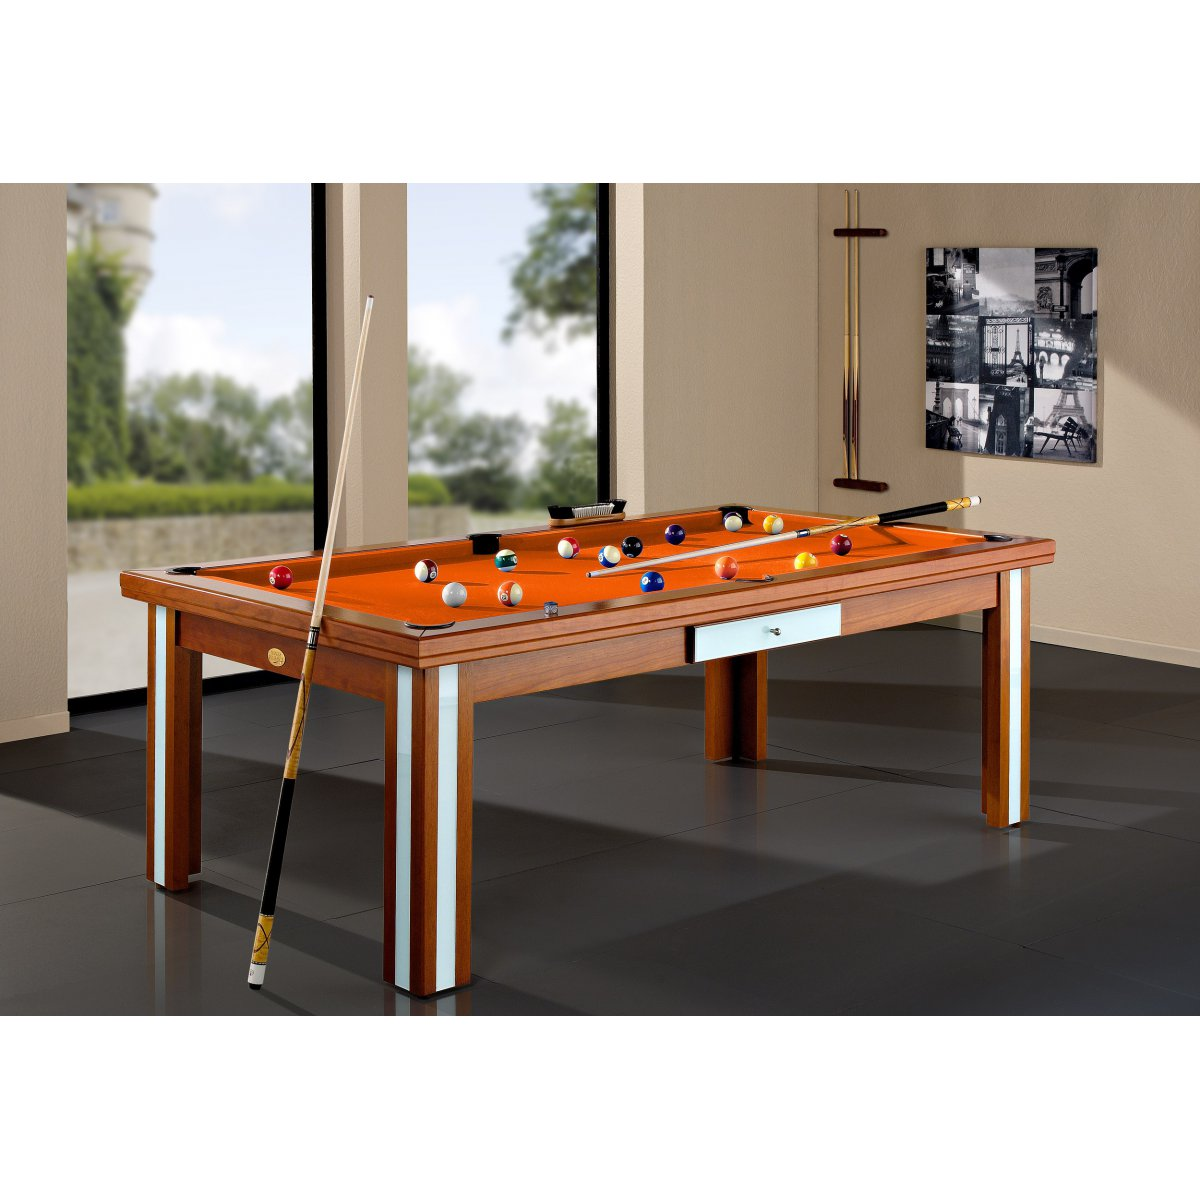 Table billard convertible milan verre - Table de billard convertible table a manger ...